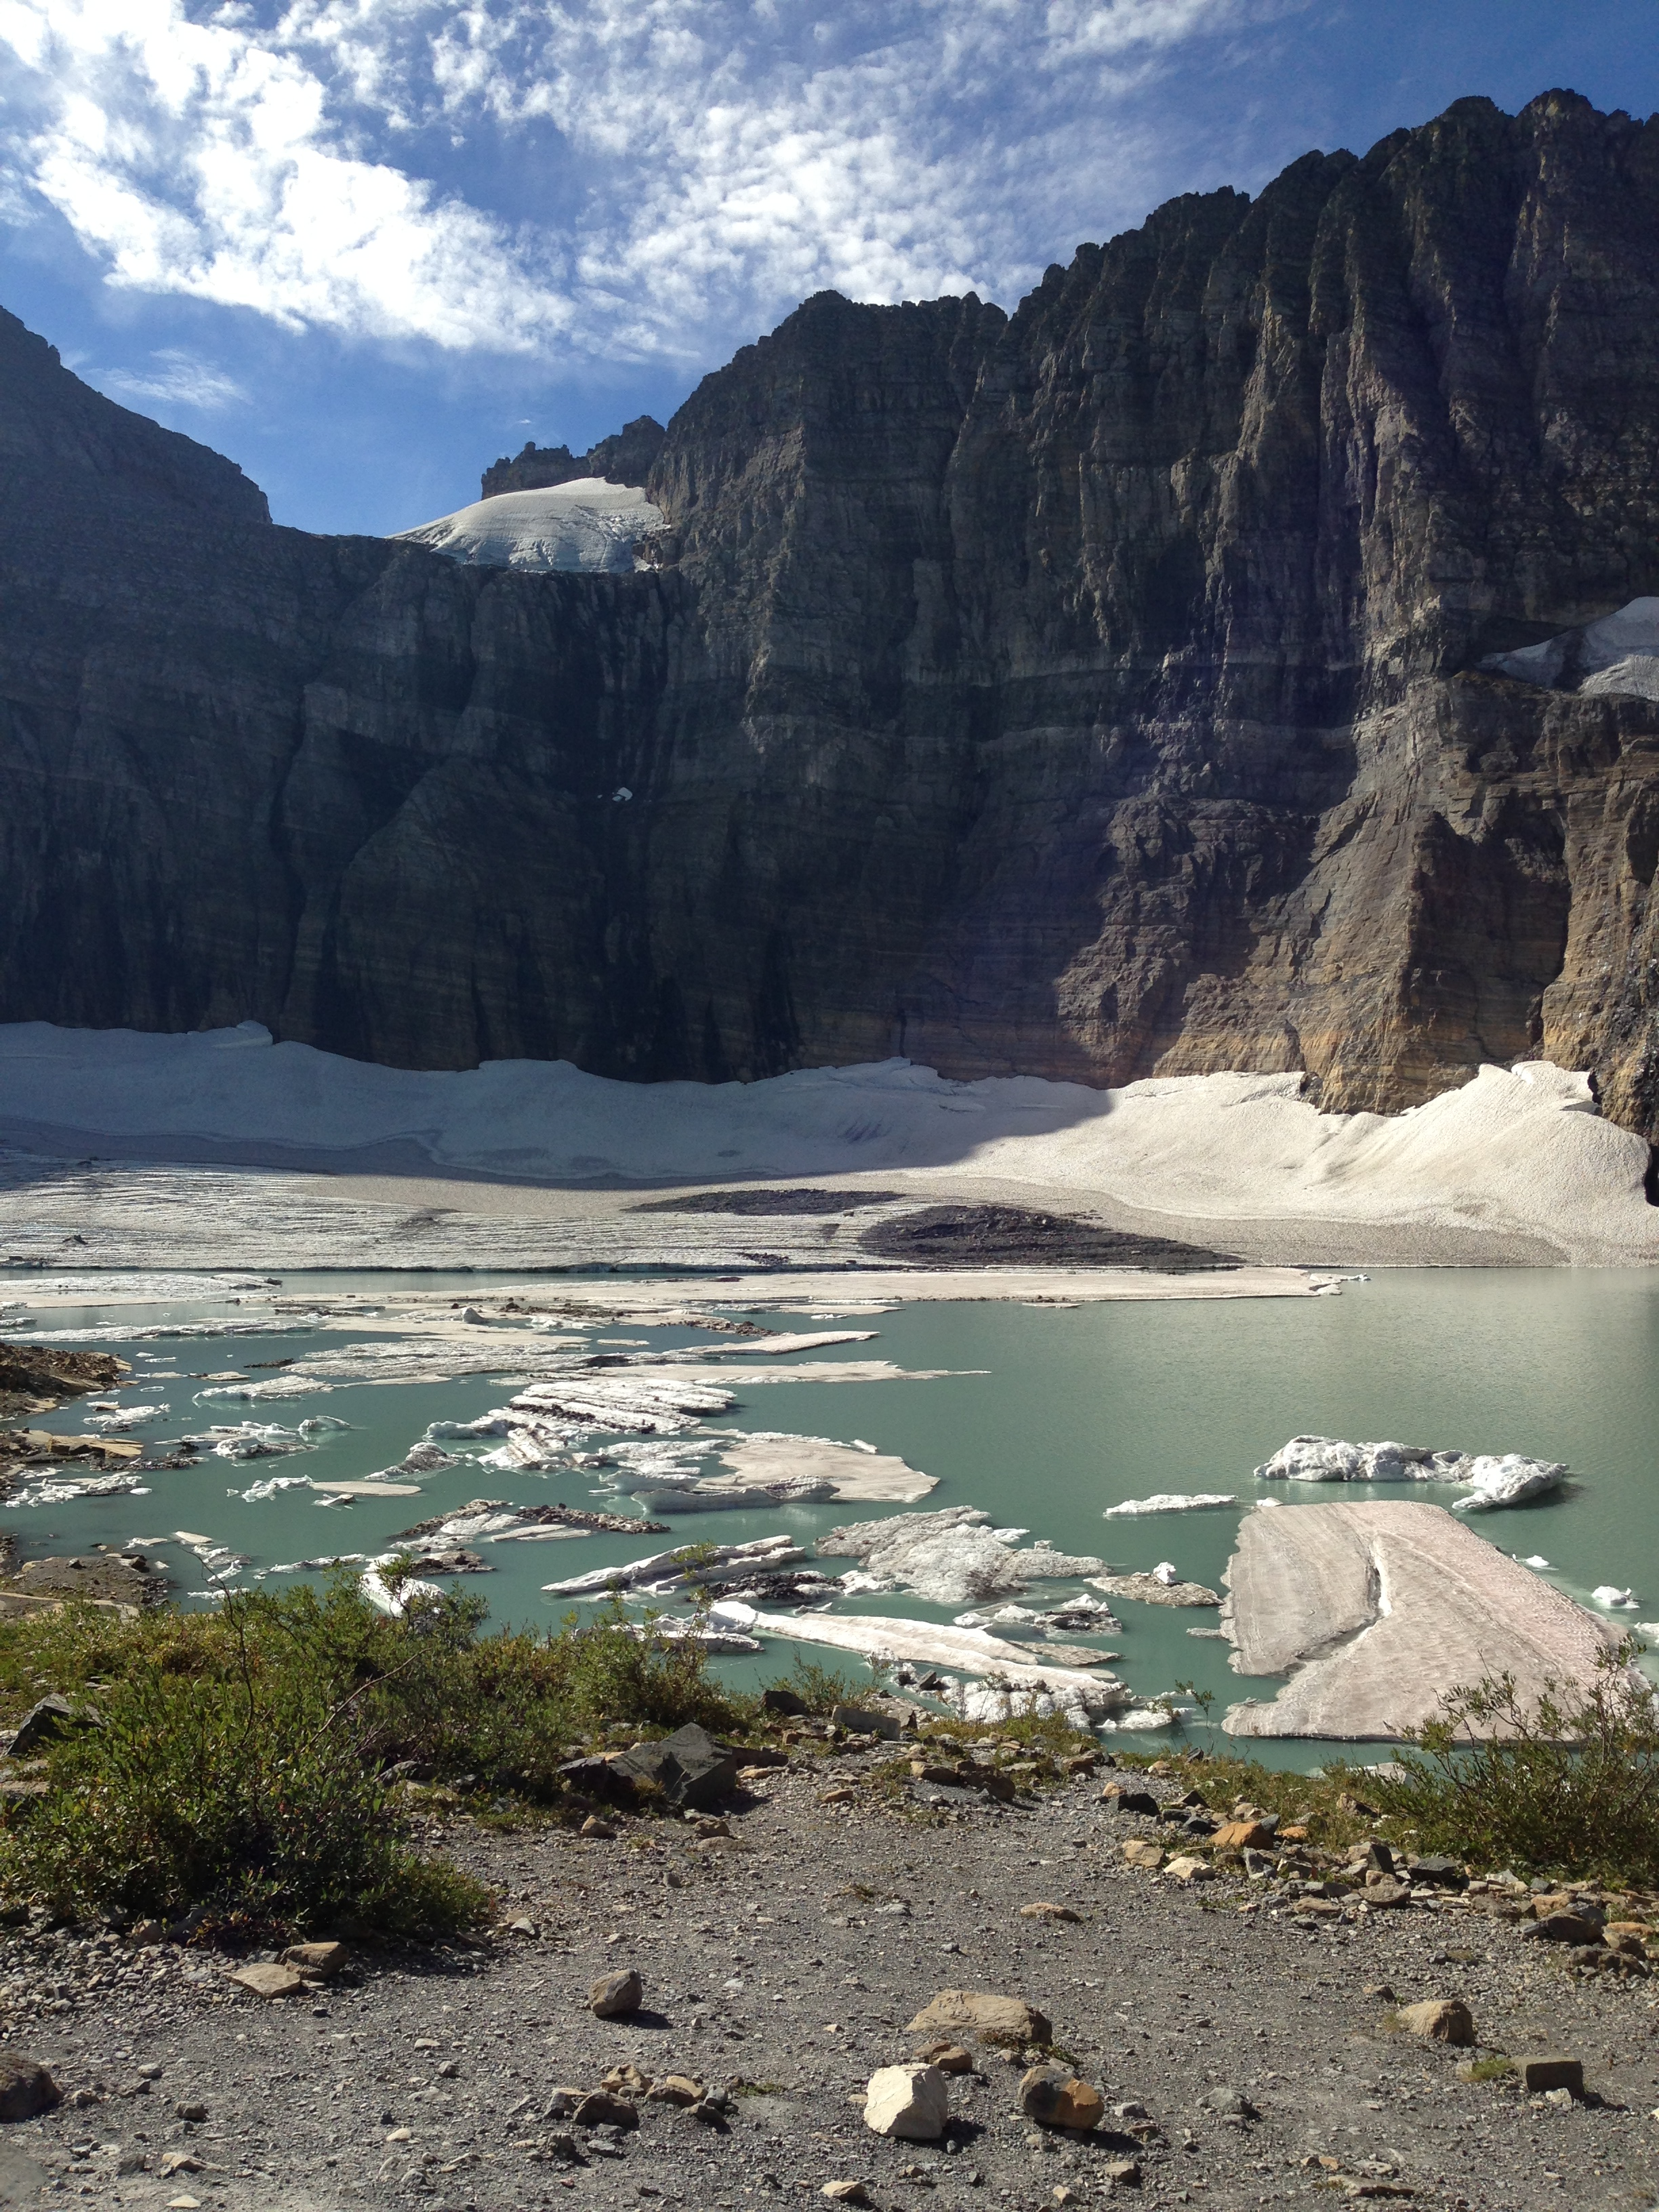 The Glaciers are melting, this is the Grinnell Glacier at the end of the Grinnell Glacier Trail a short distance from Many Glacier Lodge